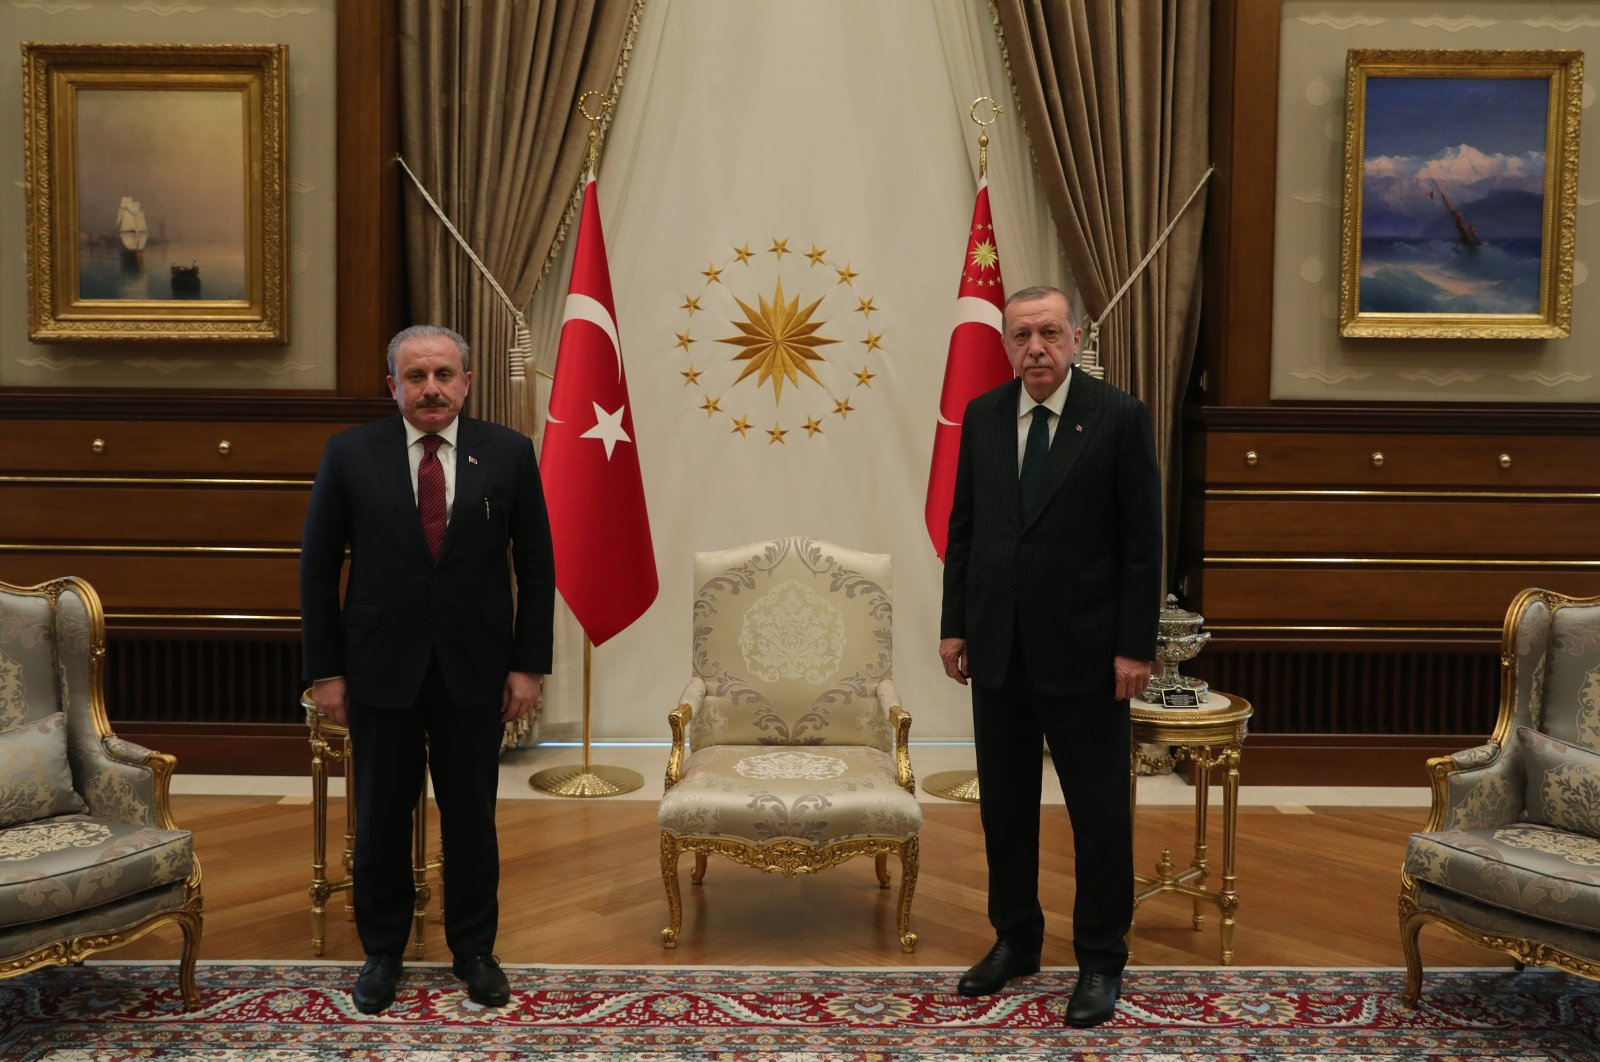 In this picture, Parliament Speaker Mustafa Şentop is hosted by President Recep Tayyip Erdoğan at the presidential complex in capital Ankara, June 17, 2020. (AA Photo)